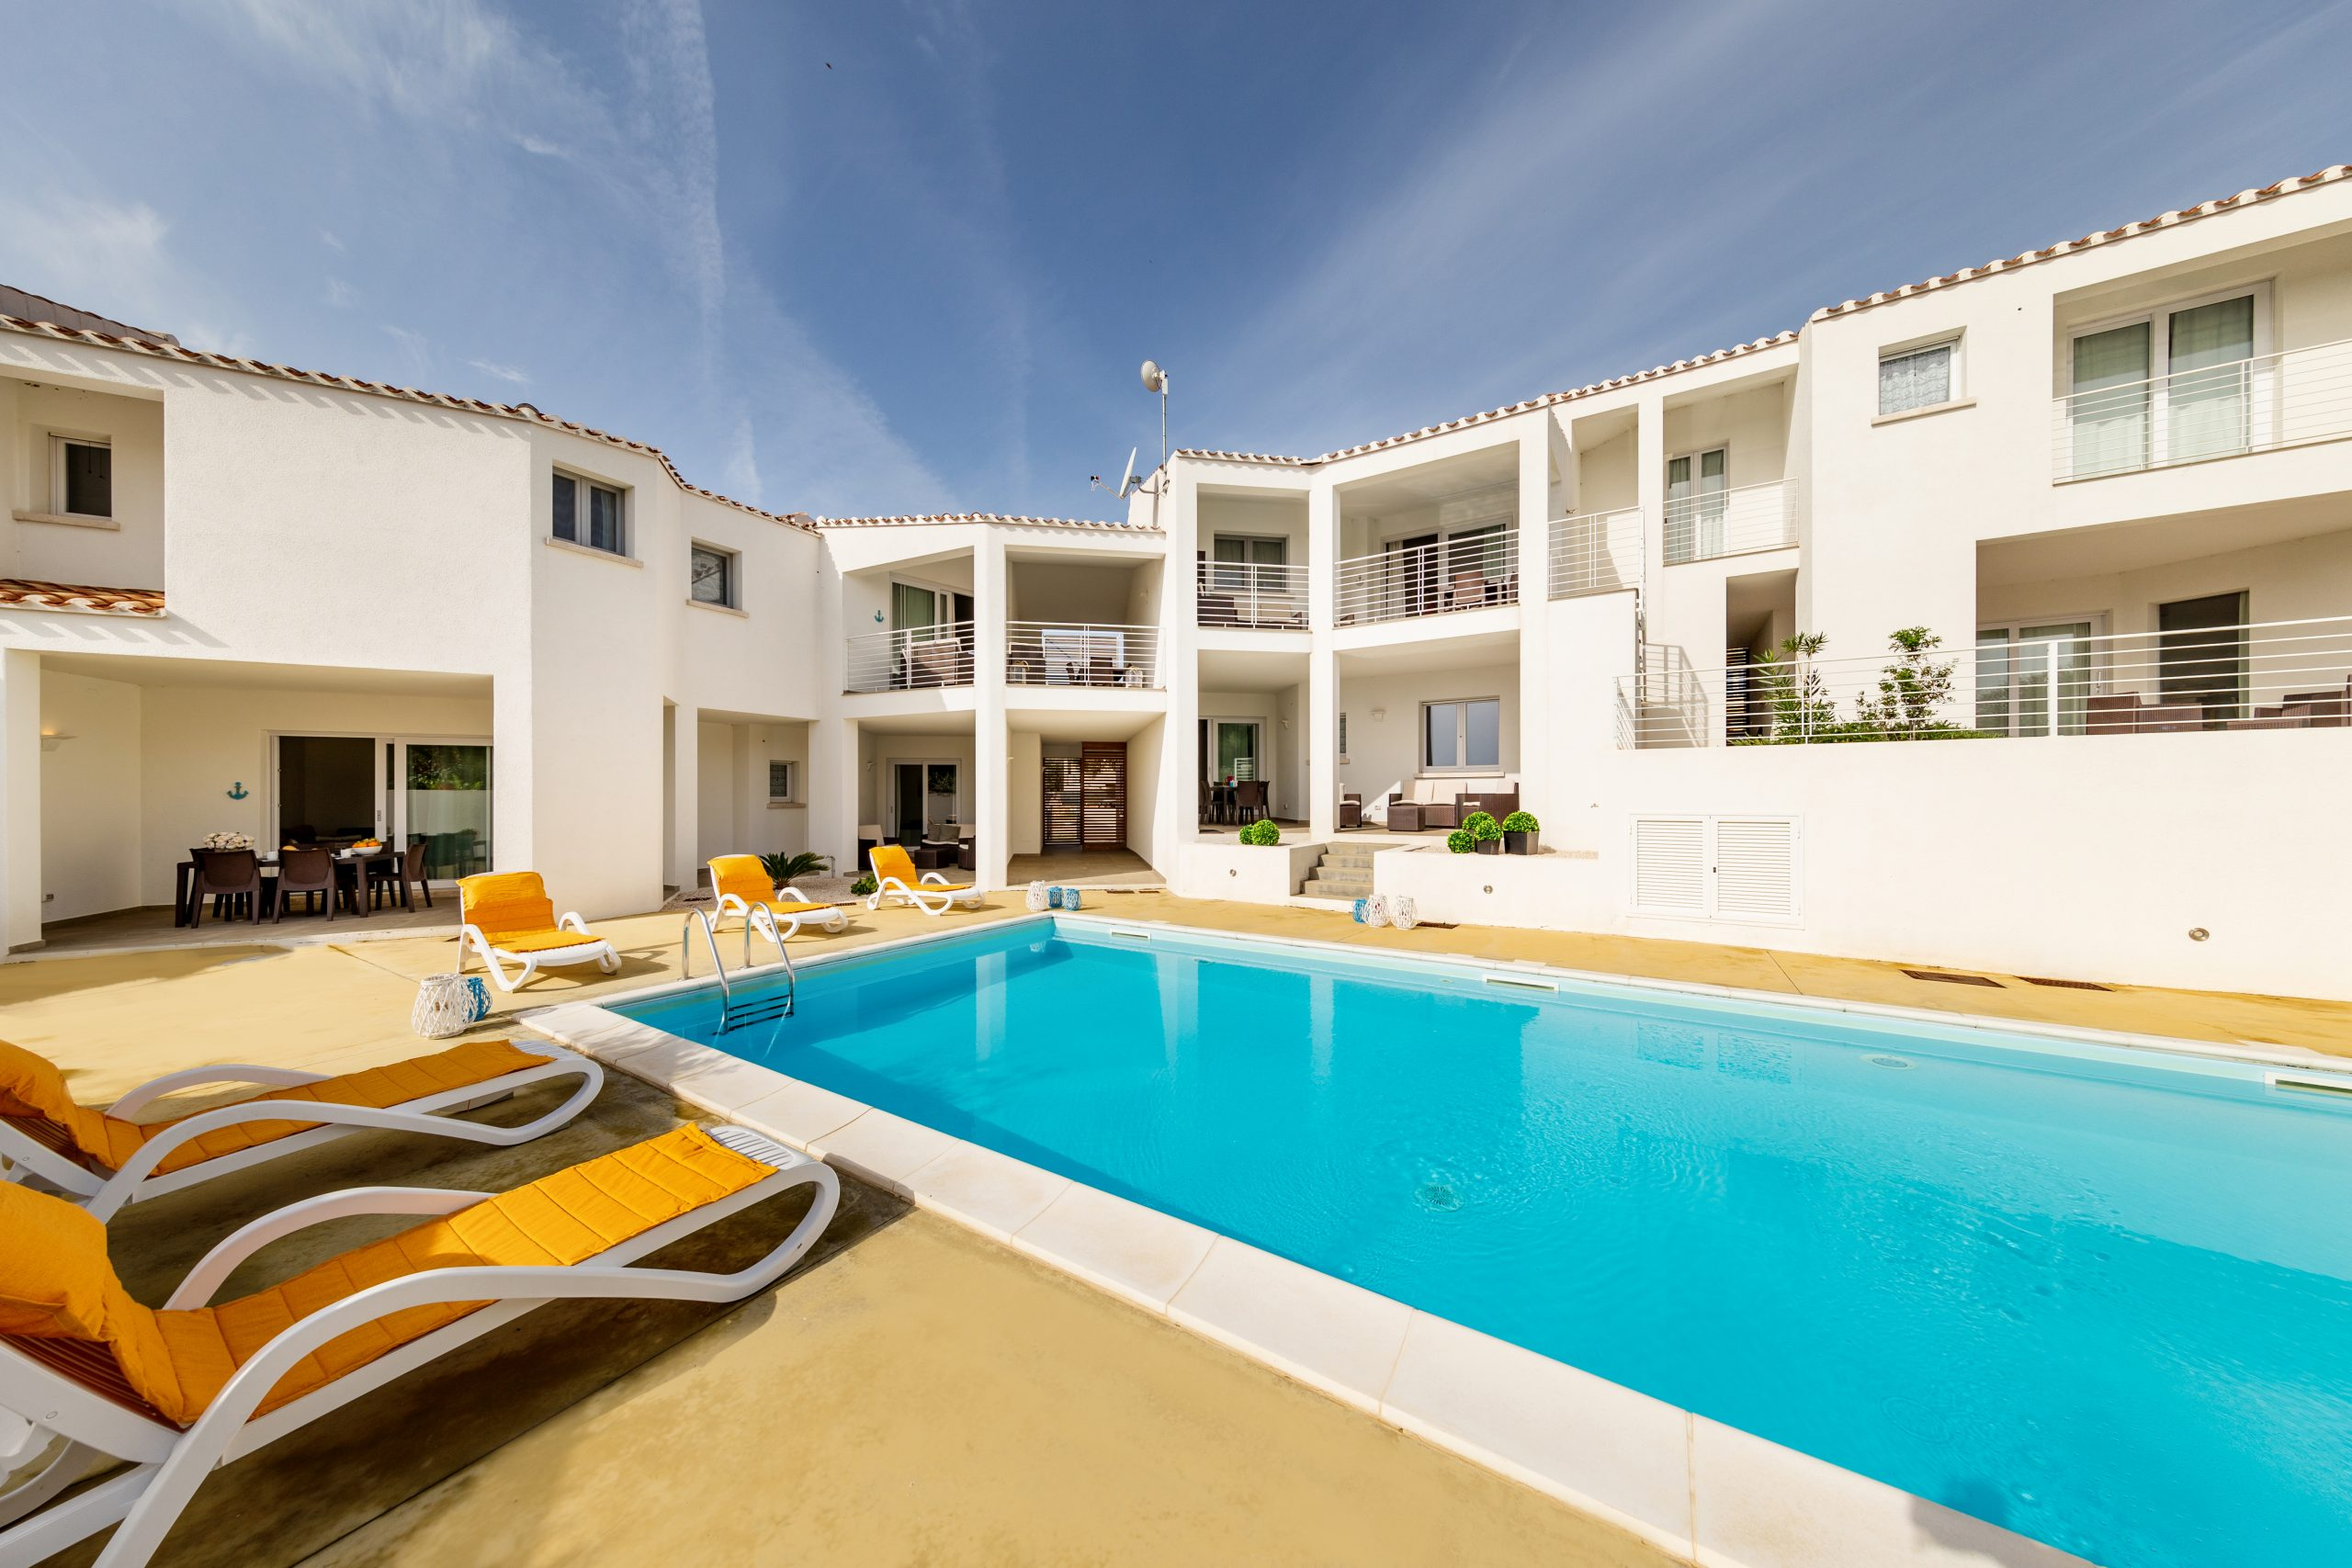 CANEIS APARTMENTS AND VILLAS